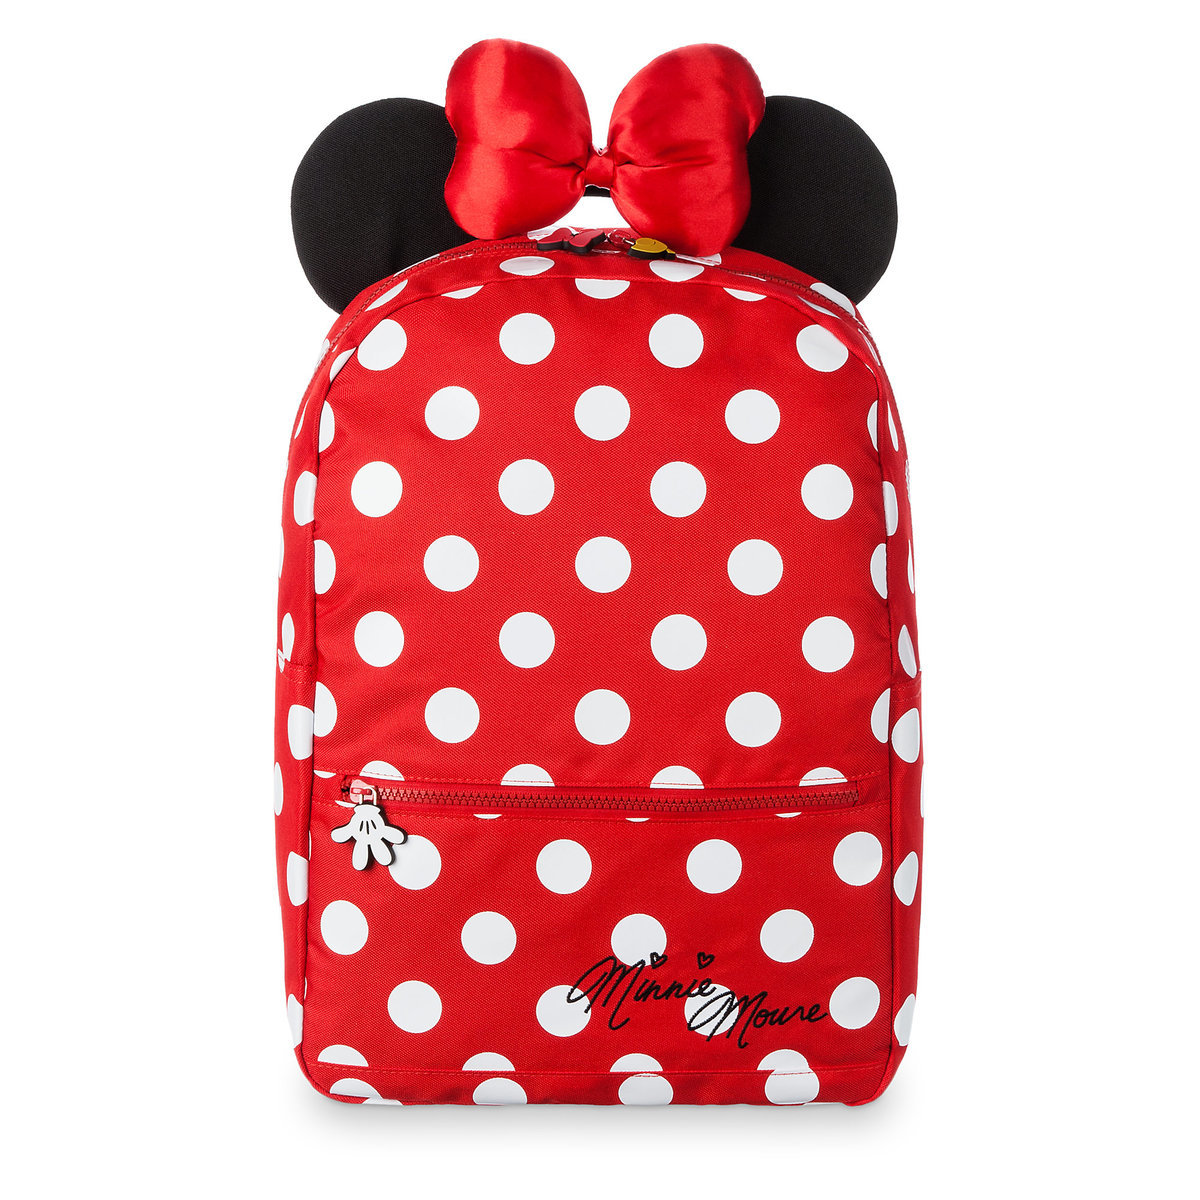 dd8f0a0e16c4 Add to My Lists. Disney Backpack Bag - I Am Minnie Mouse for Kids